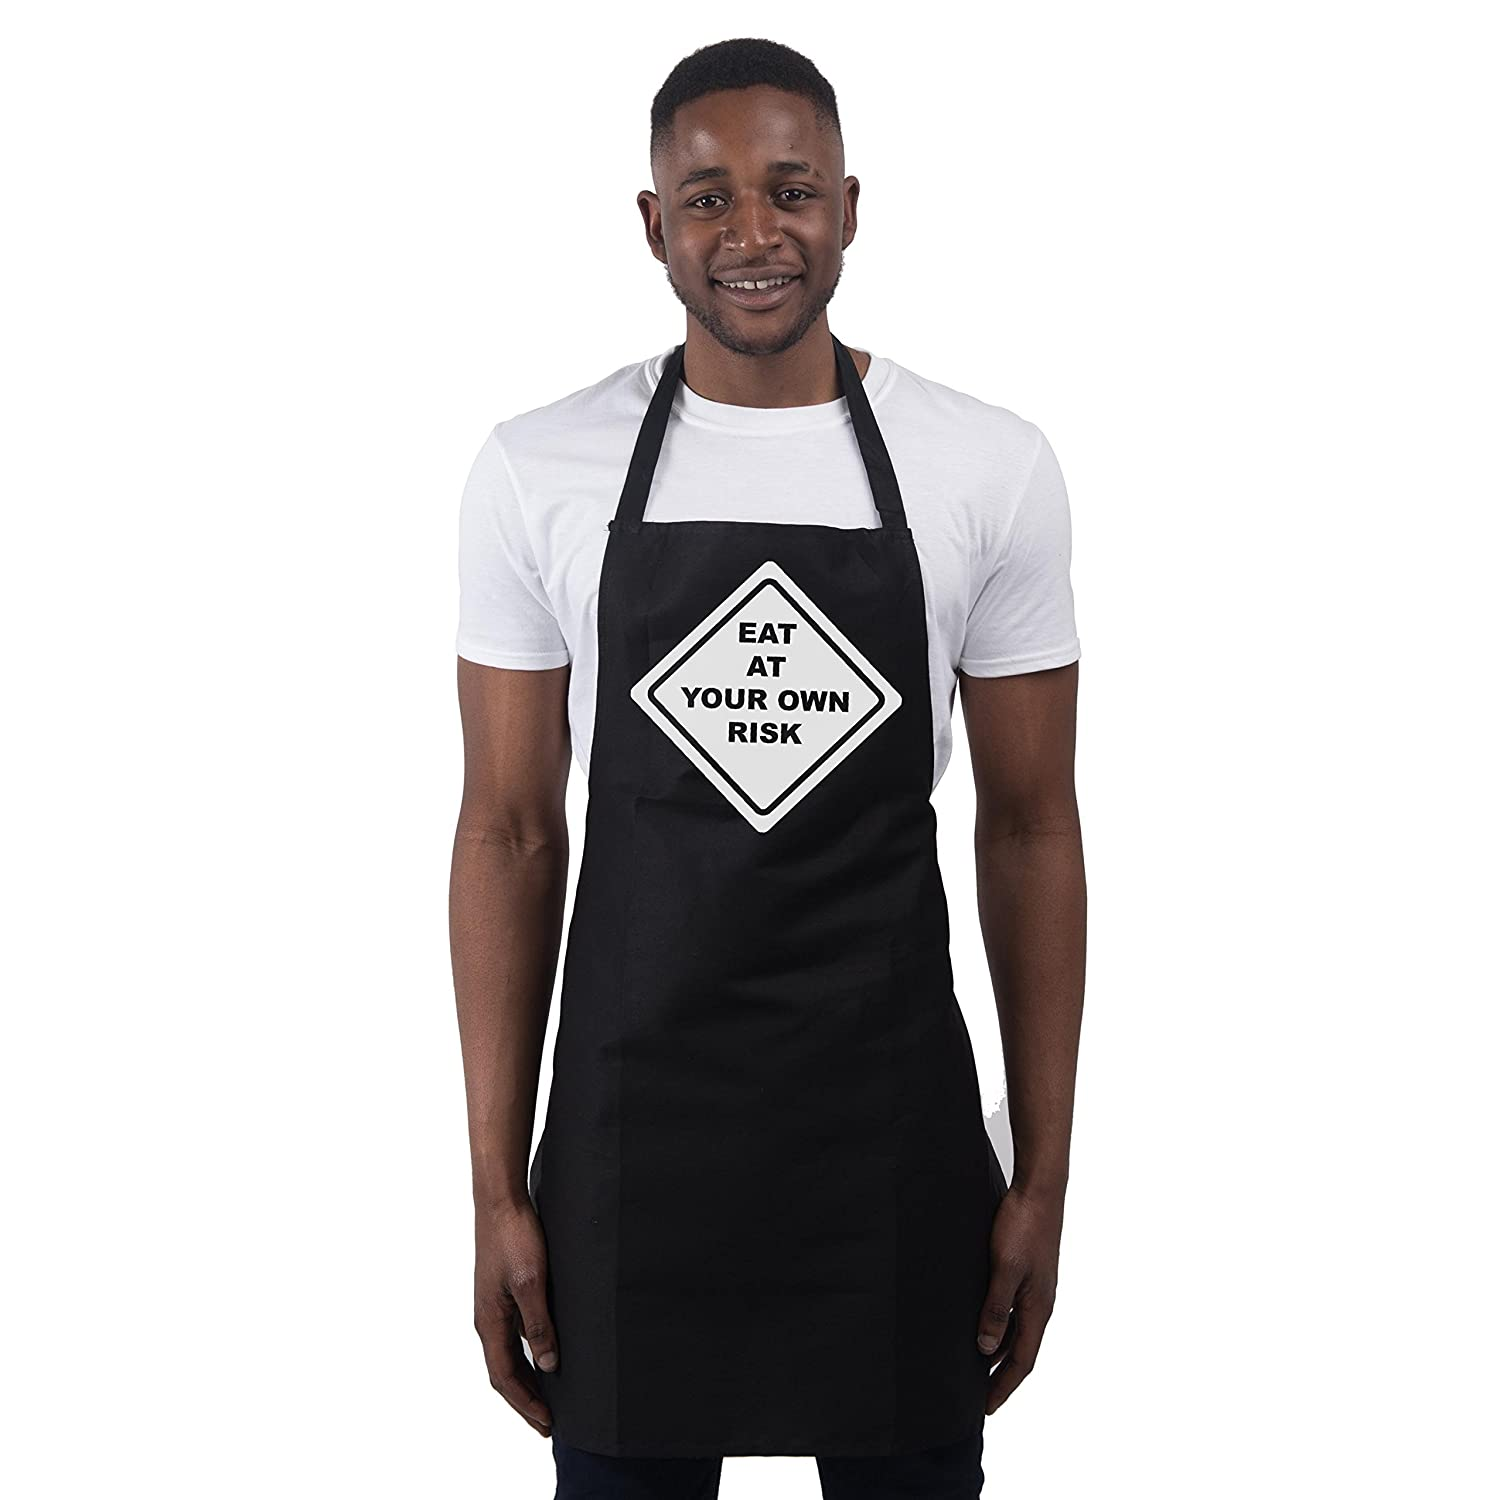 Funny BBQ Apron Novelty Aprons Cooking Gifts for Men Eat At Your Own Risk Bla.